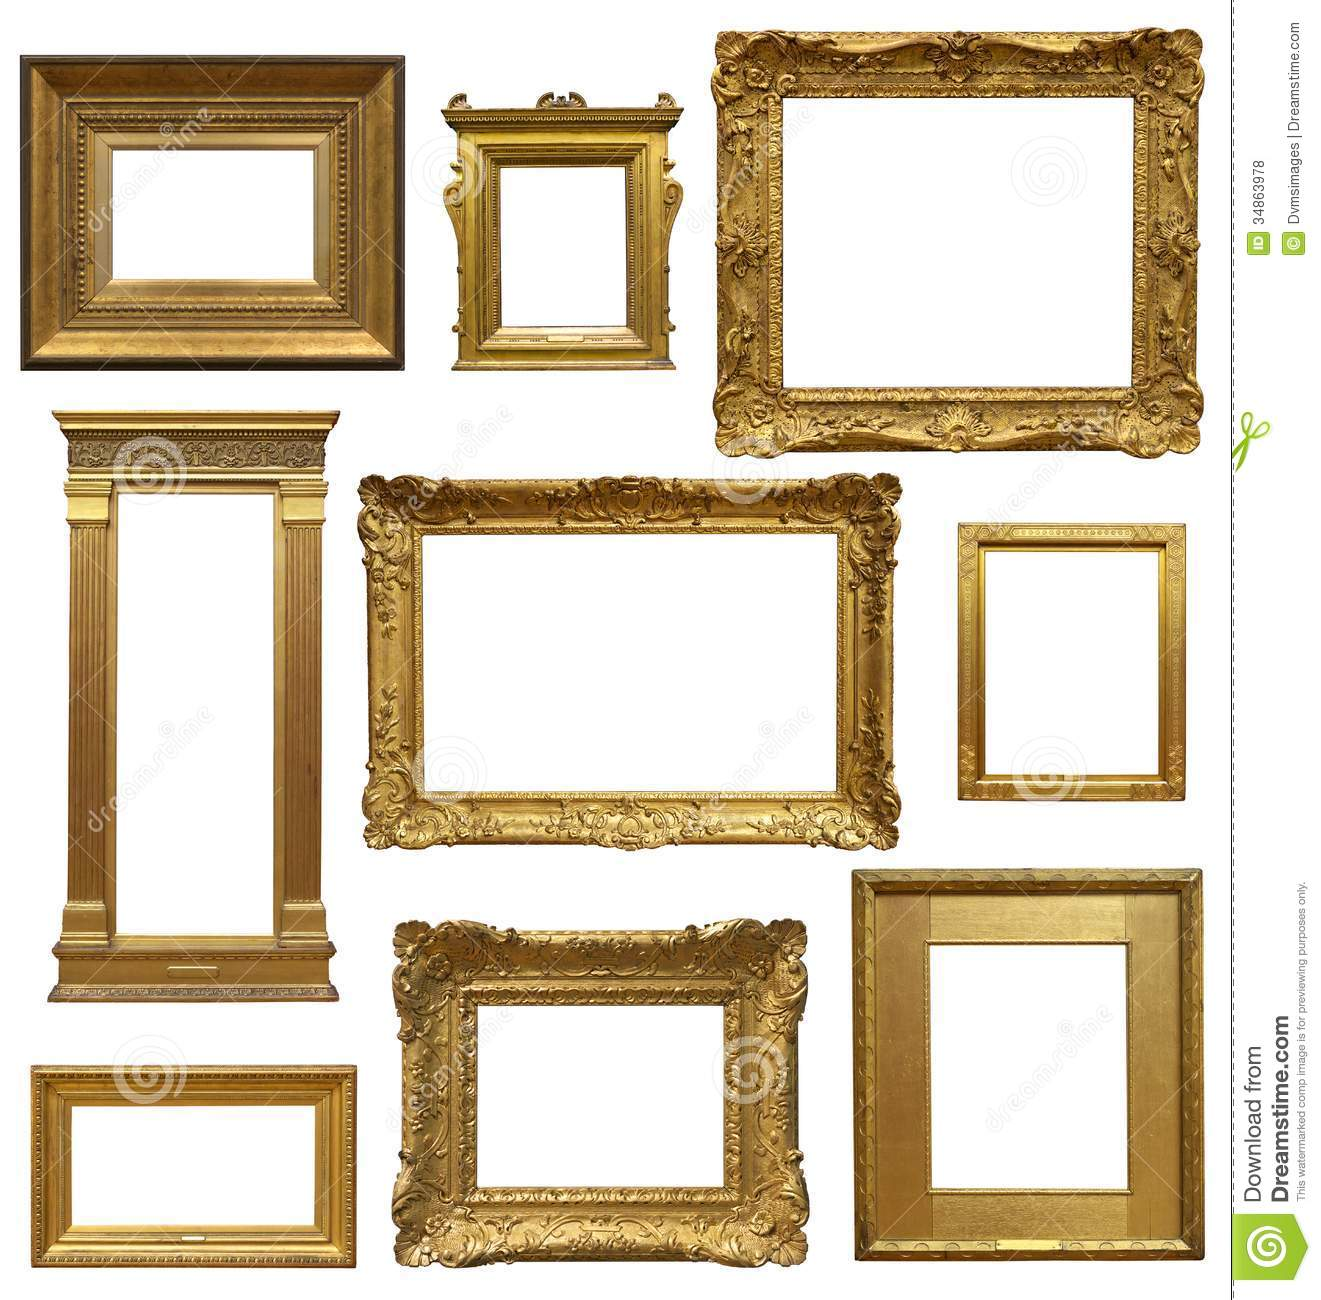 Old Art Gallery Frames Stock Photo Image Of Baroque